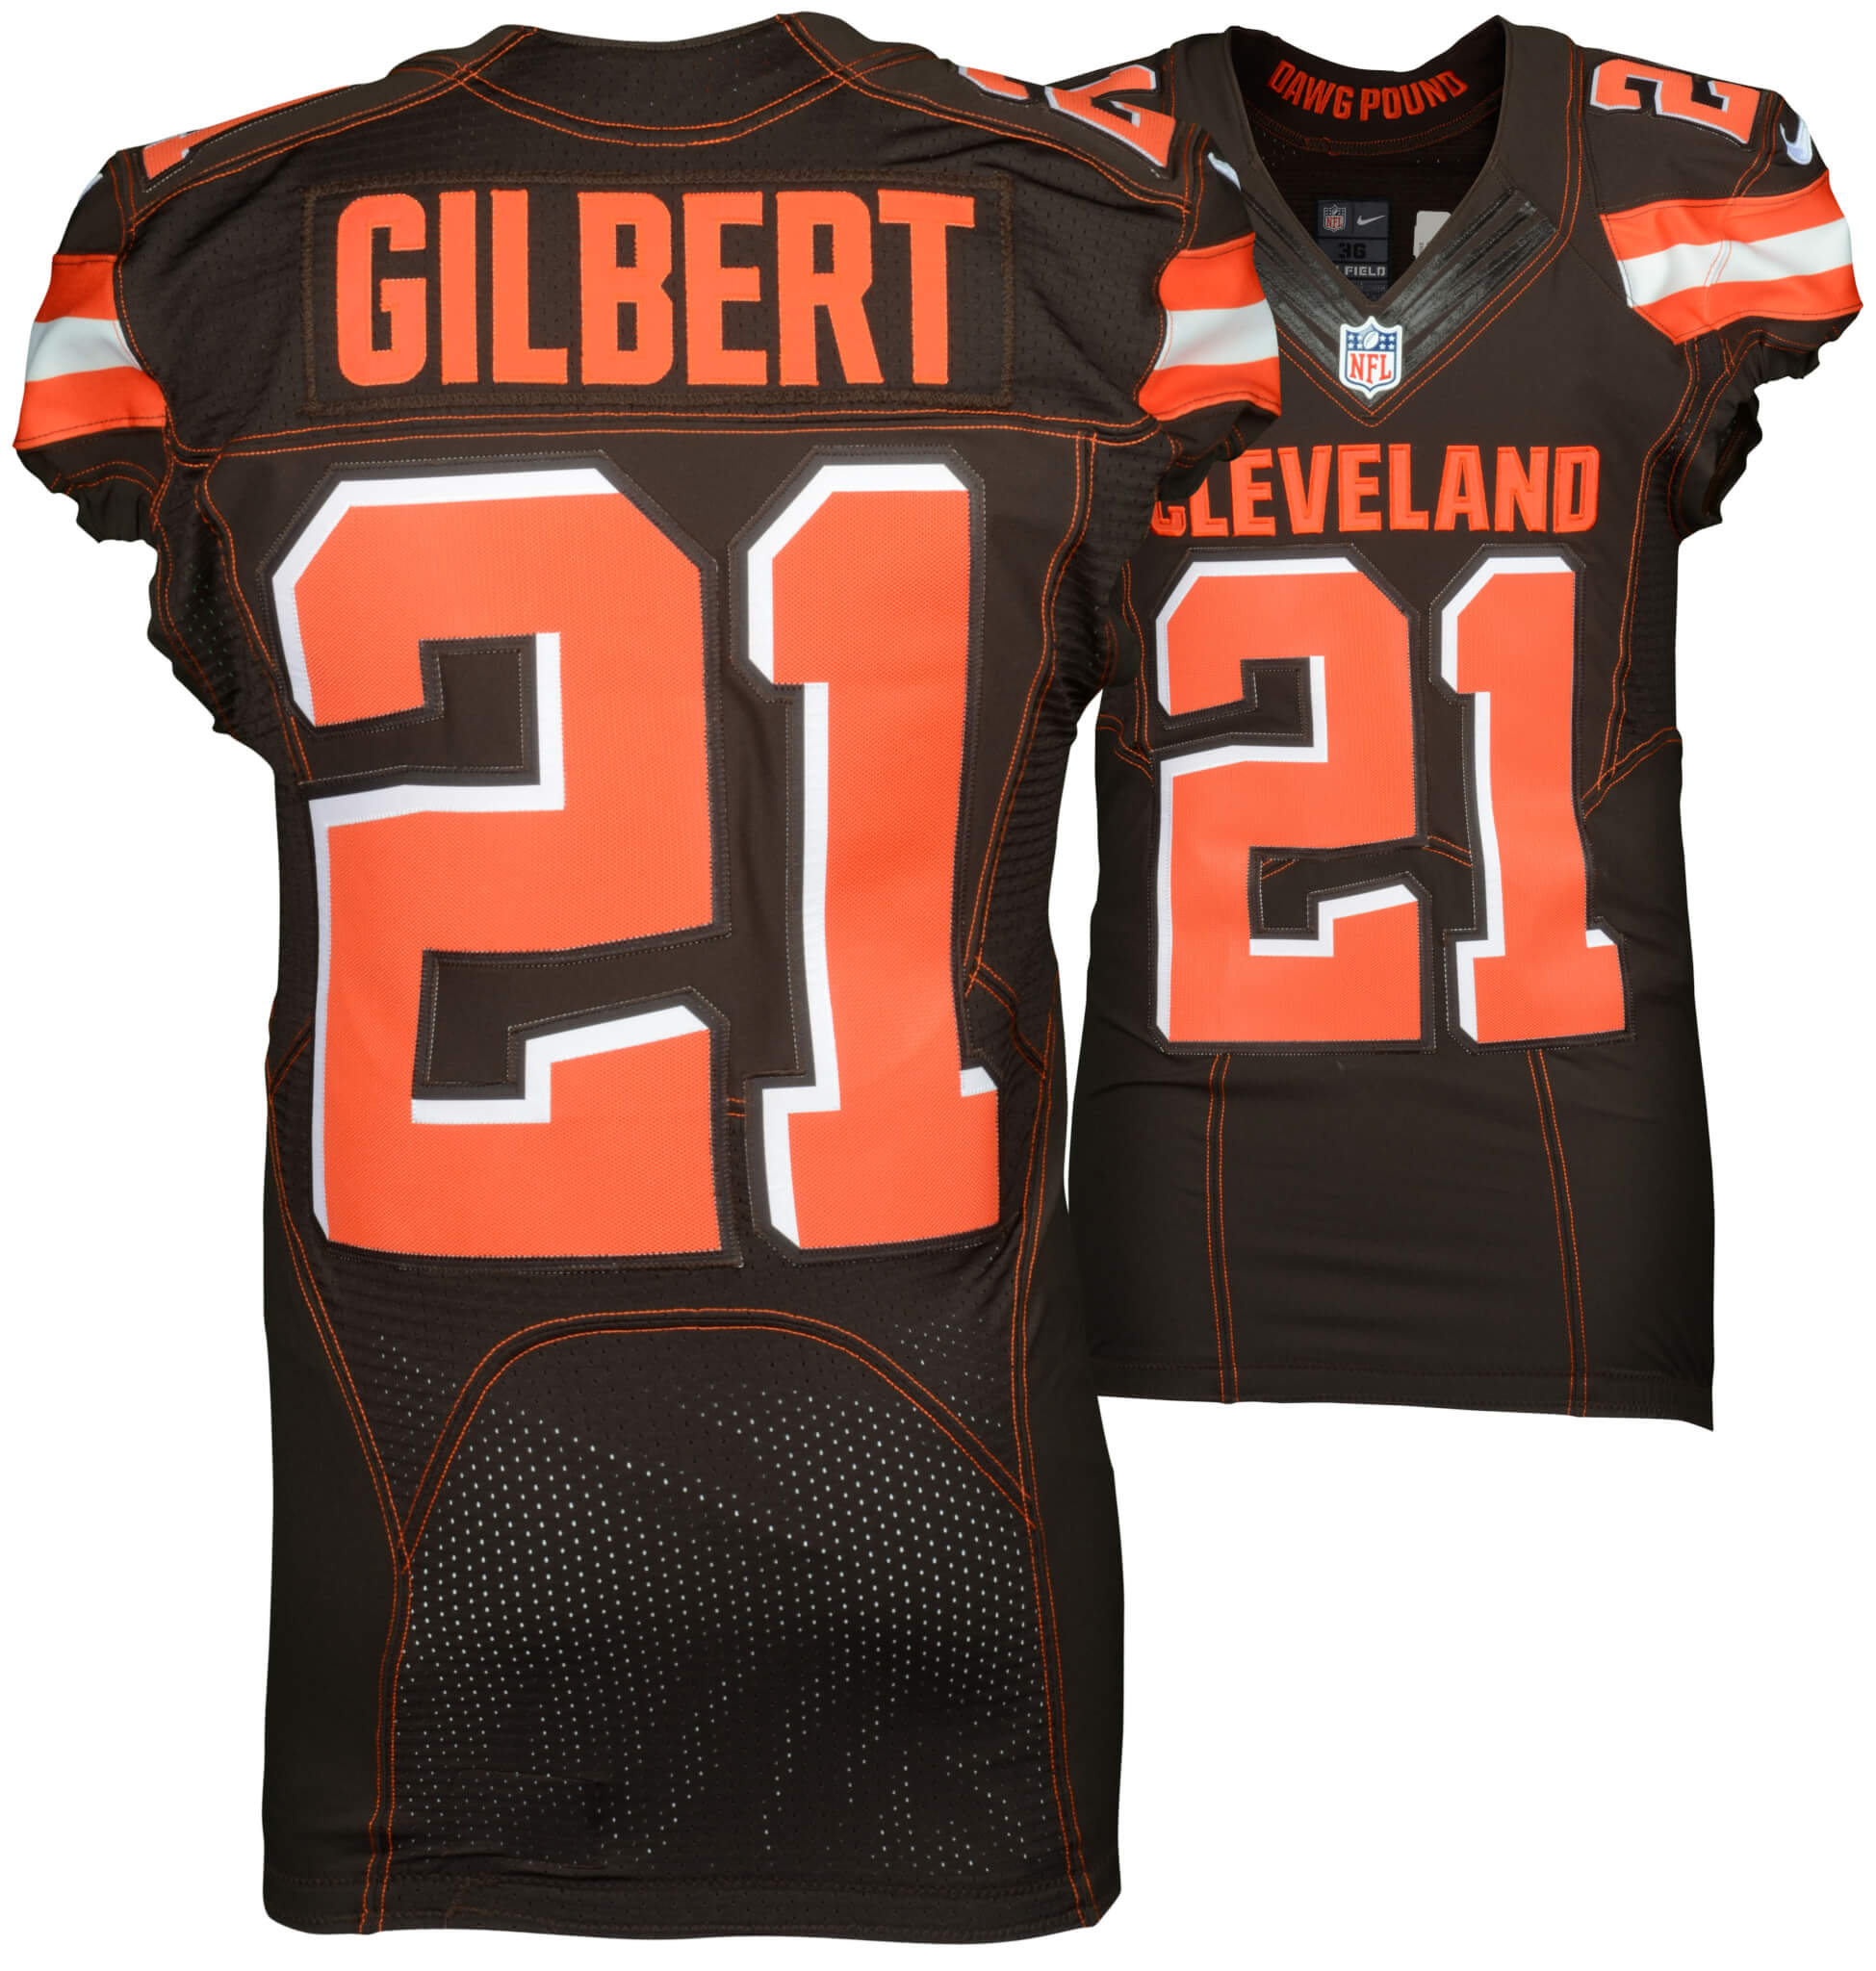 September 13, 2015 New York Jets vs. Cleveland Browns Justin Gilbert